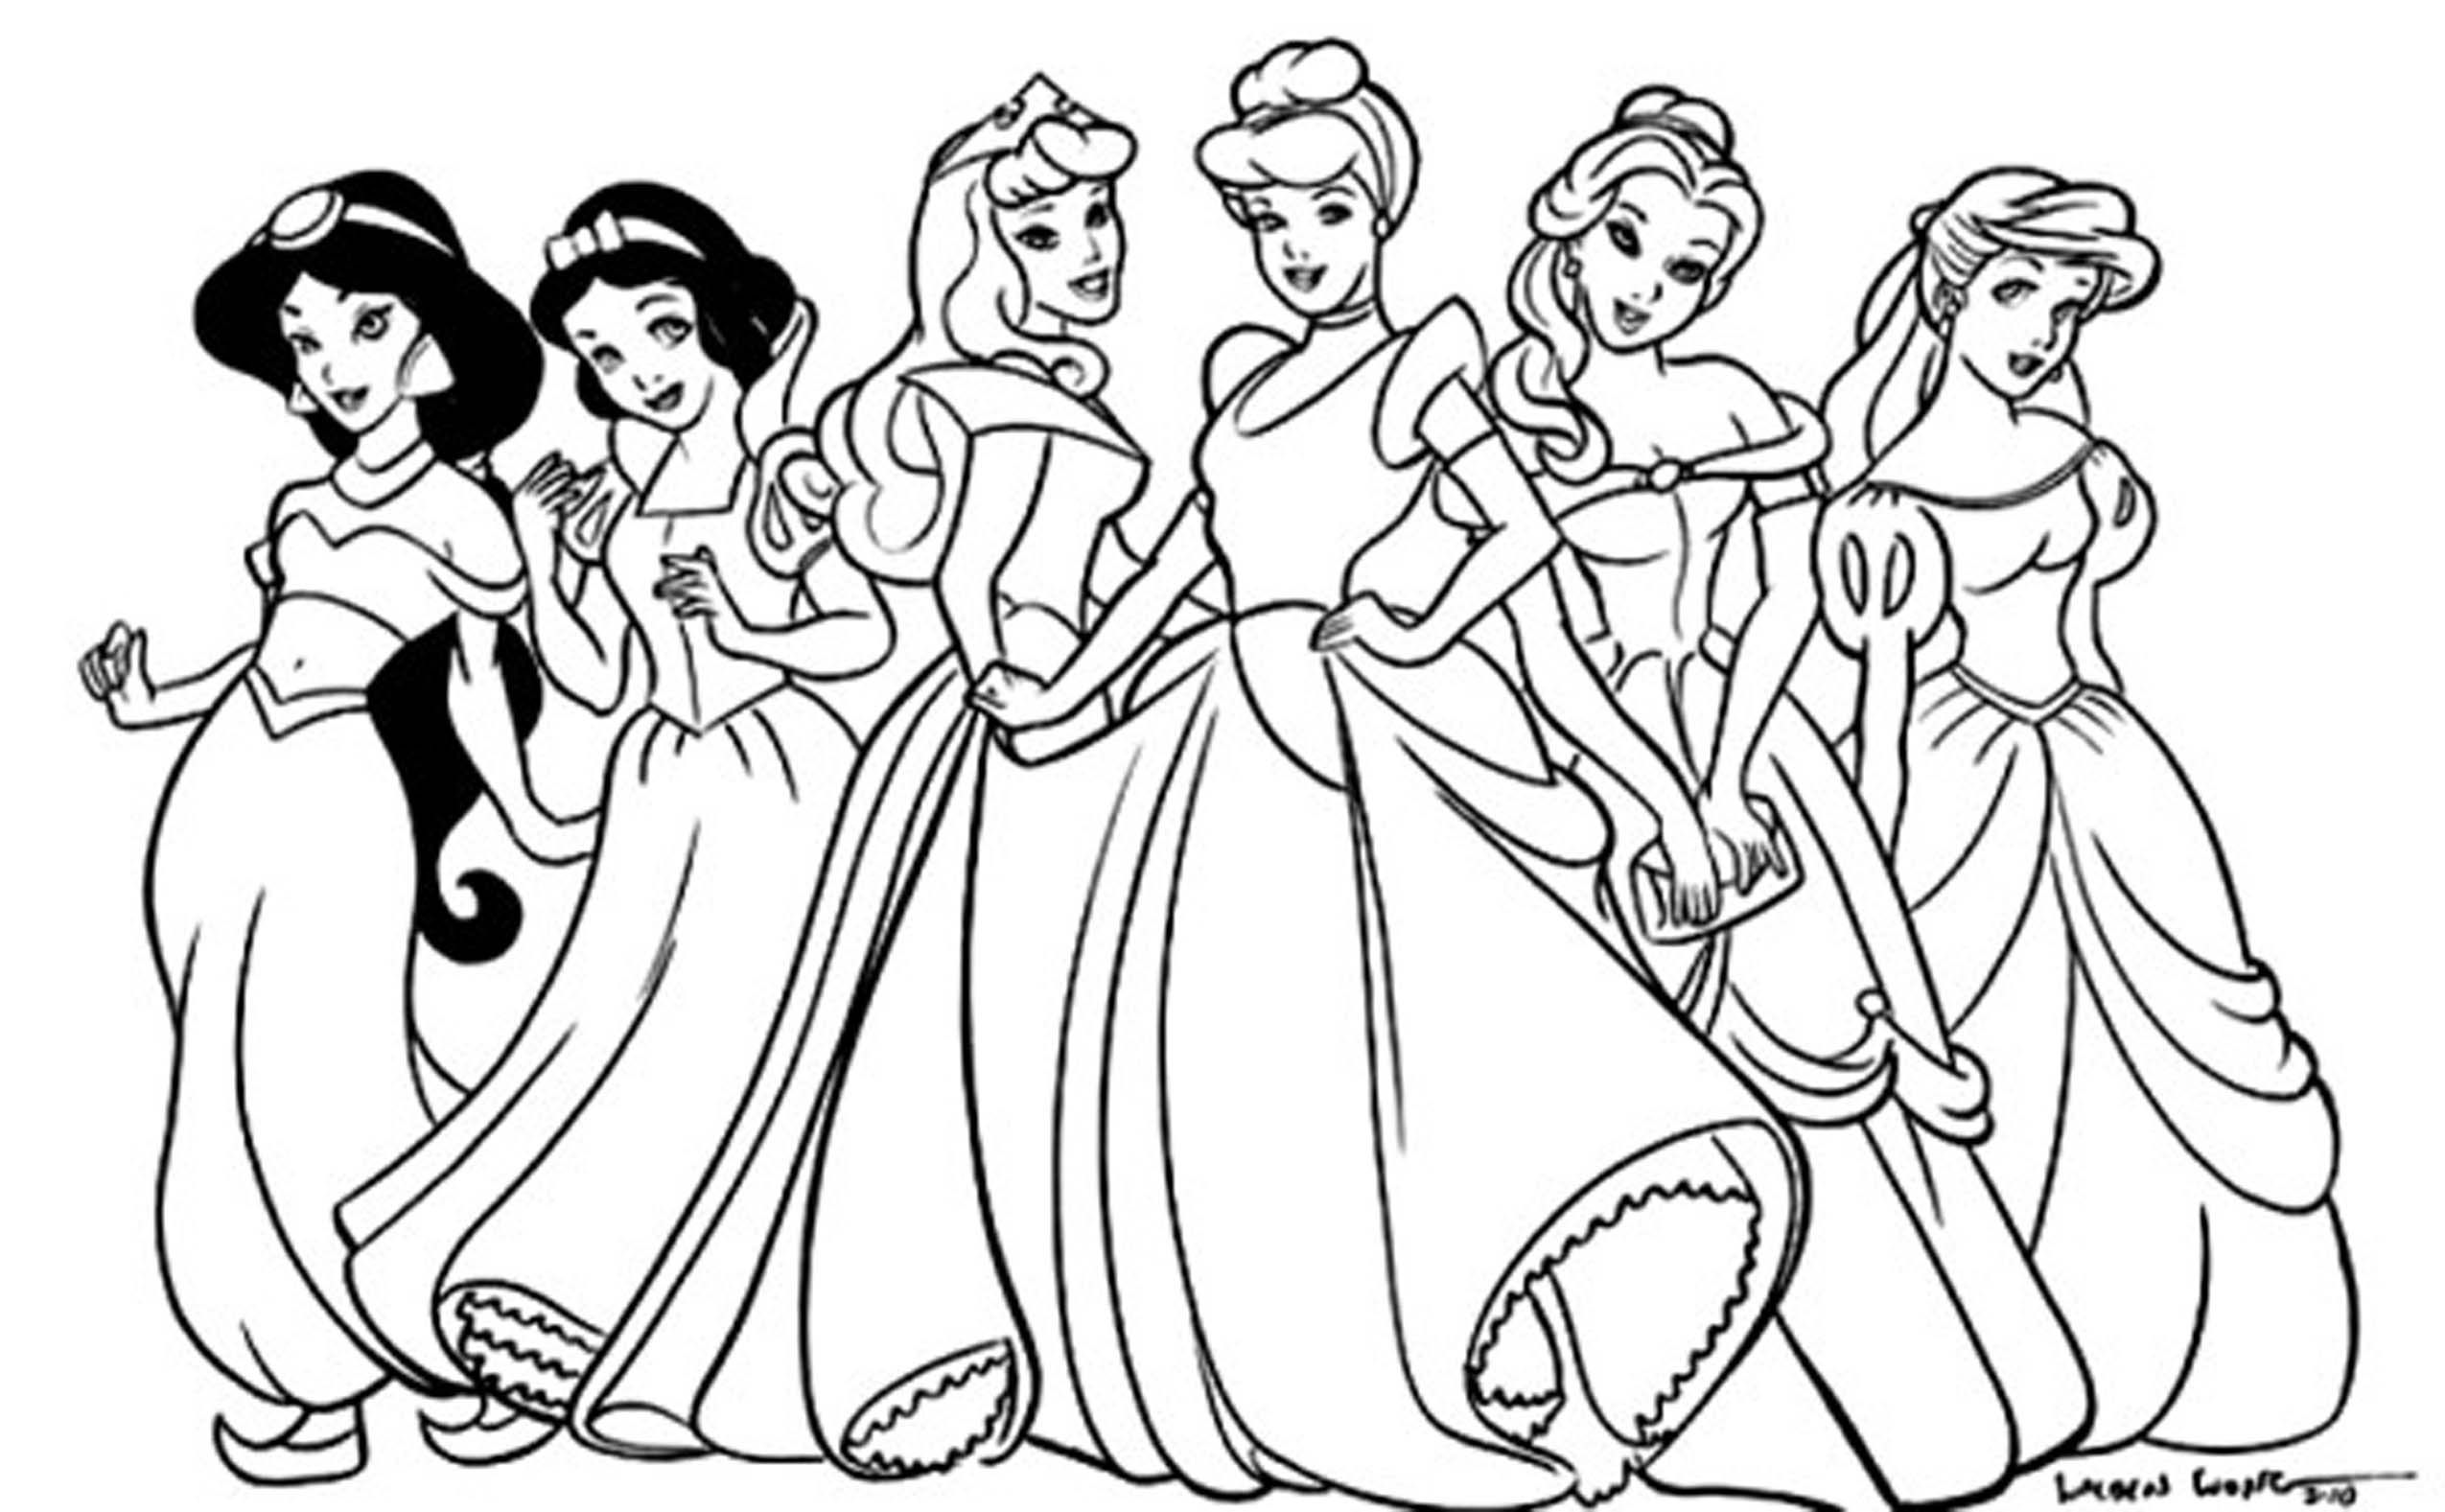 Disney Princess Printable Colouring Pages | Disney princess ...